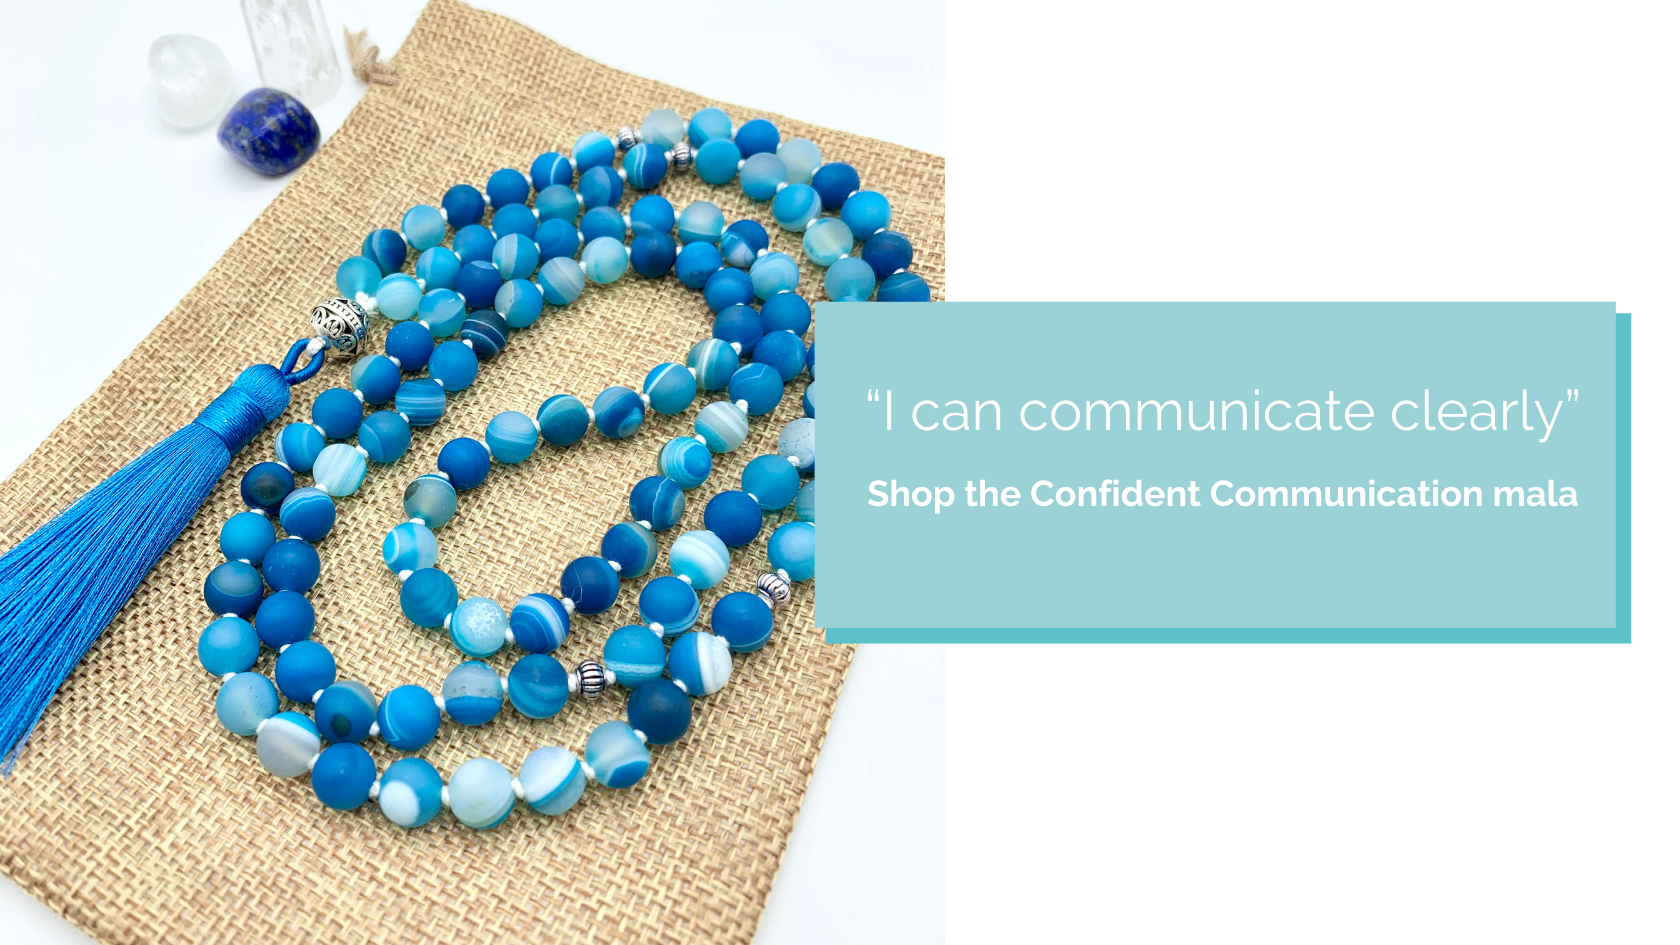 Shop the Confident Communication Mala